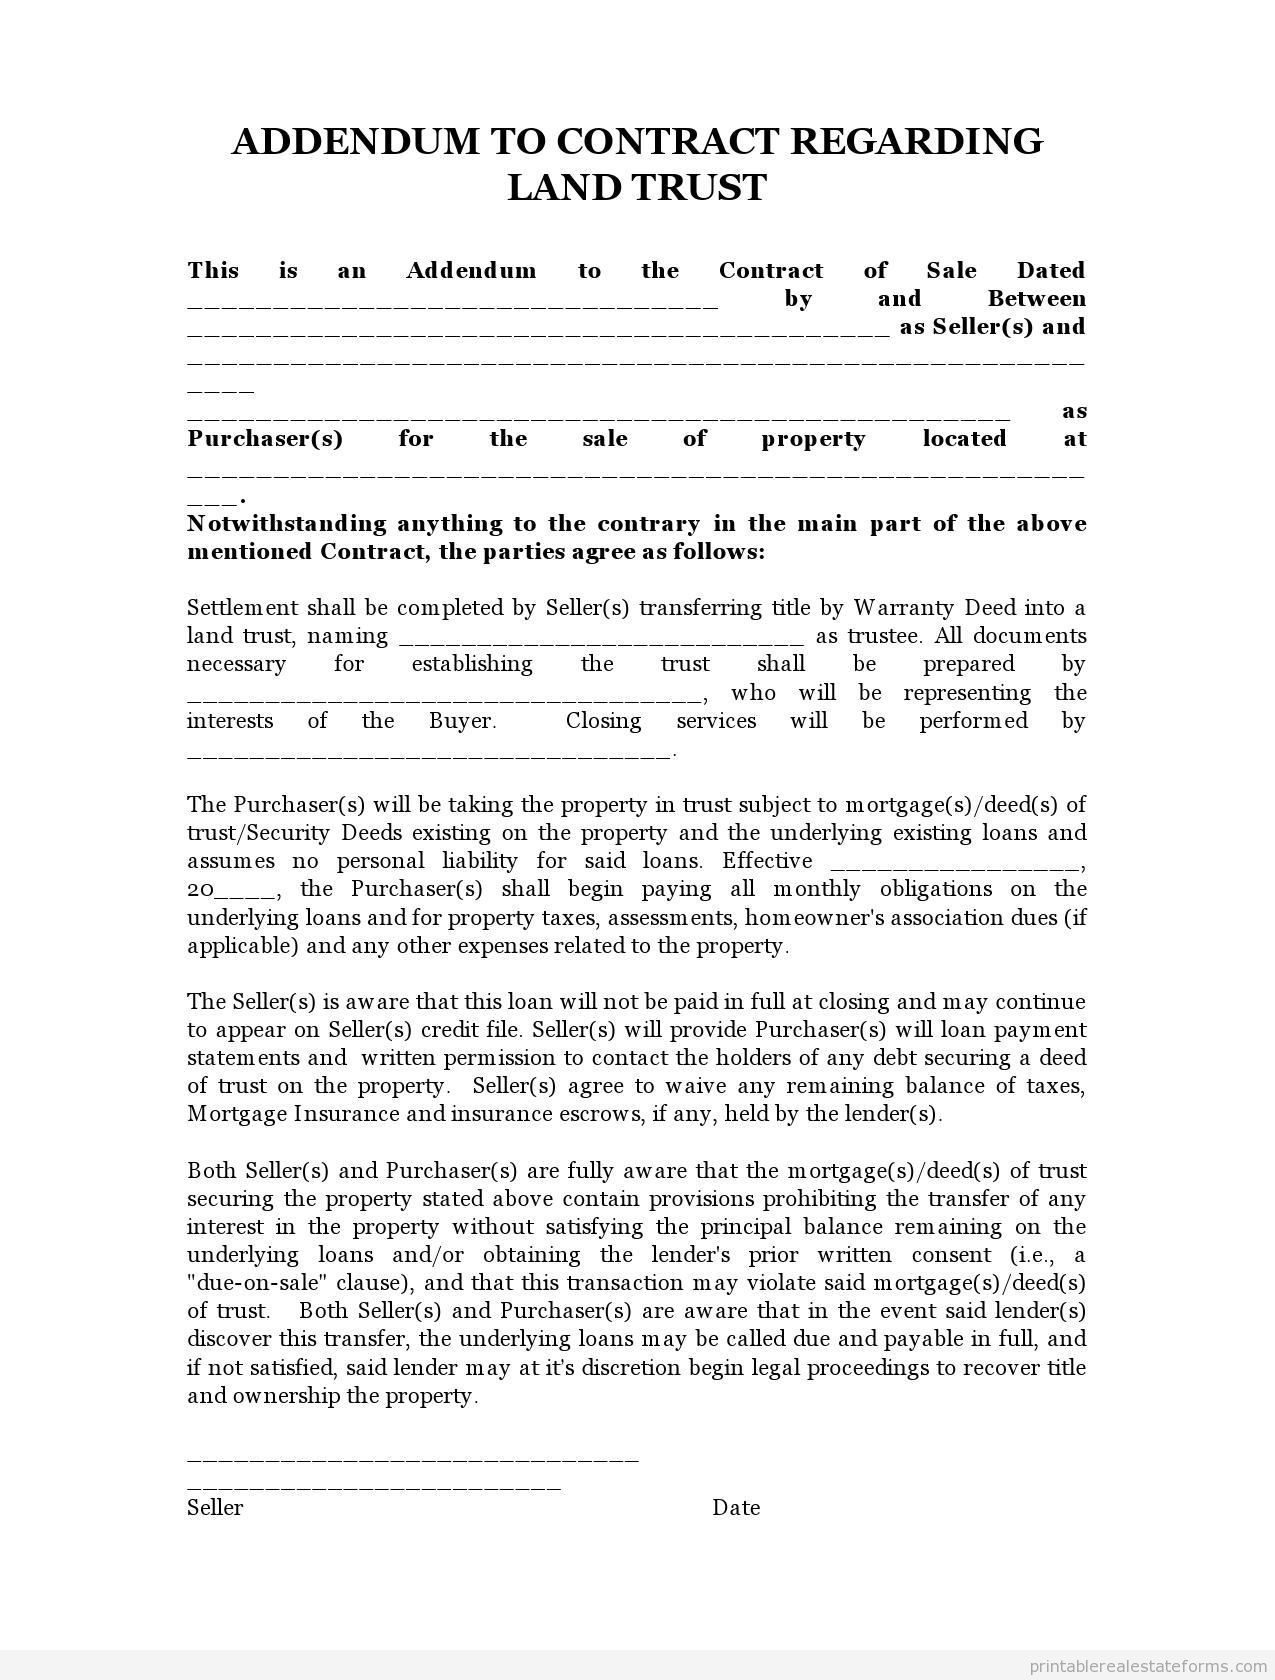 Sample Printable Land Trust Addendum Form  Sample Real Estate